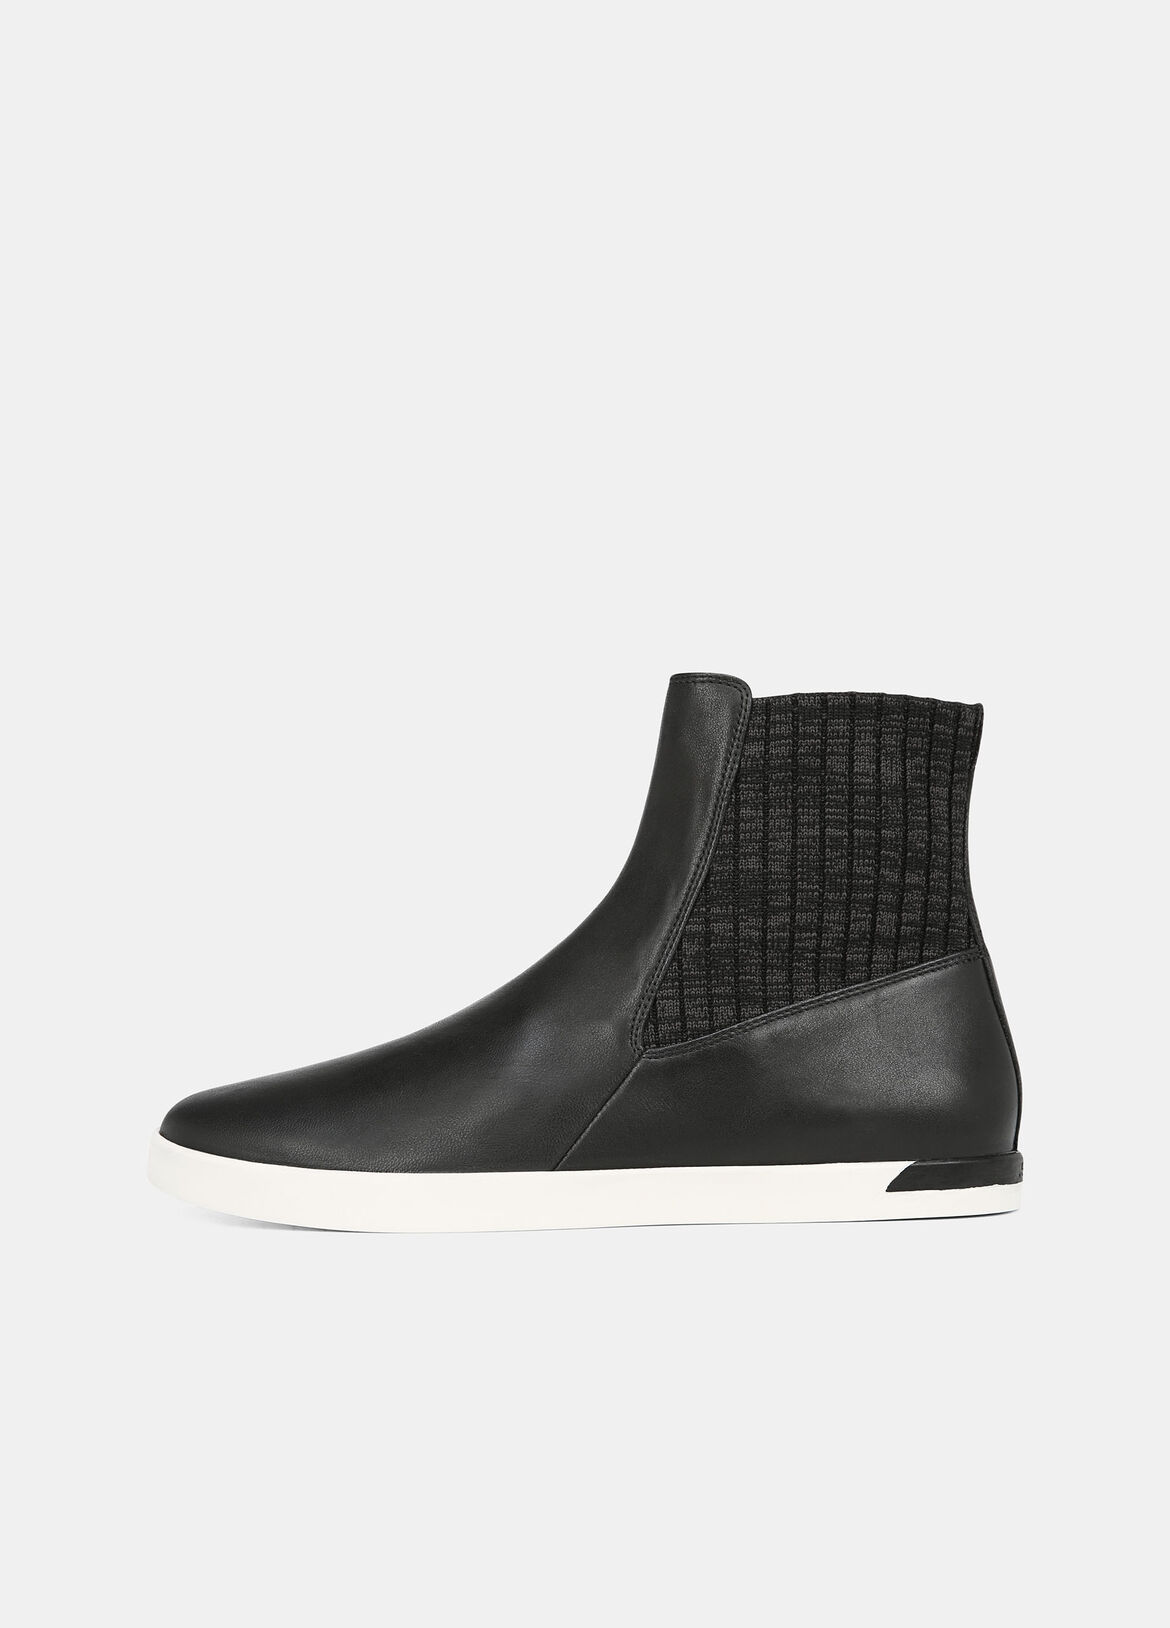 Set on rubber roles, the Vidra Sneaker features an ankle-high silhouette with slip-on ease. A mixed media construction reveals tonal, multi-textural panels of leather and knit.